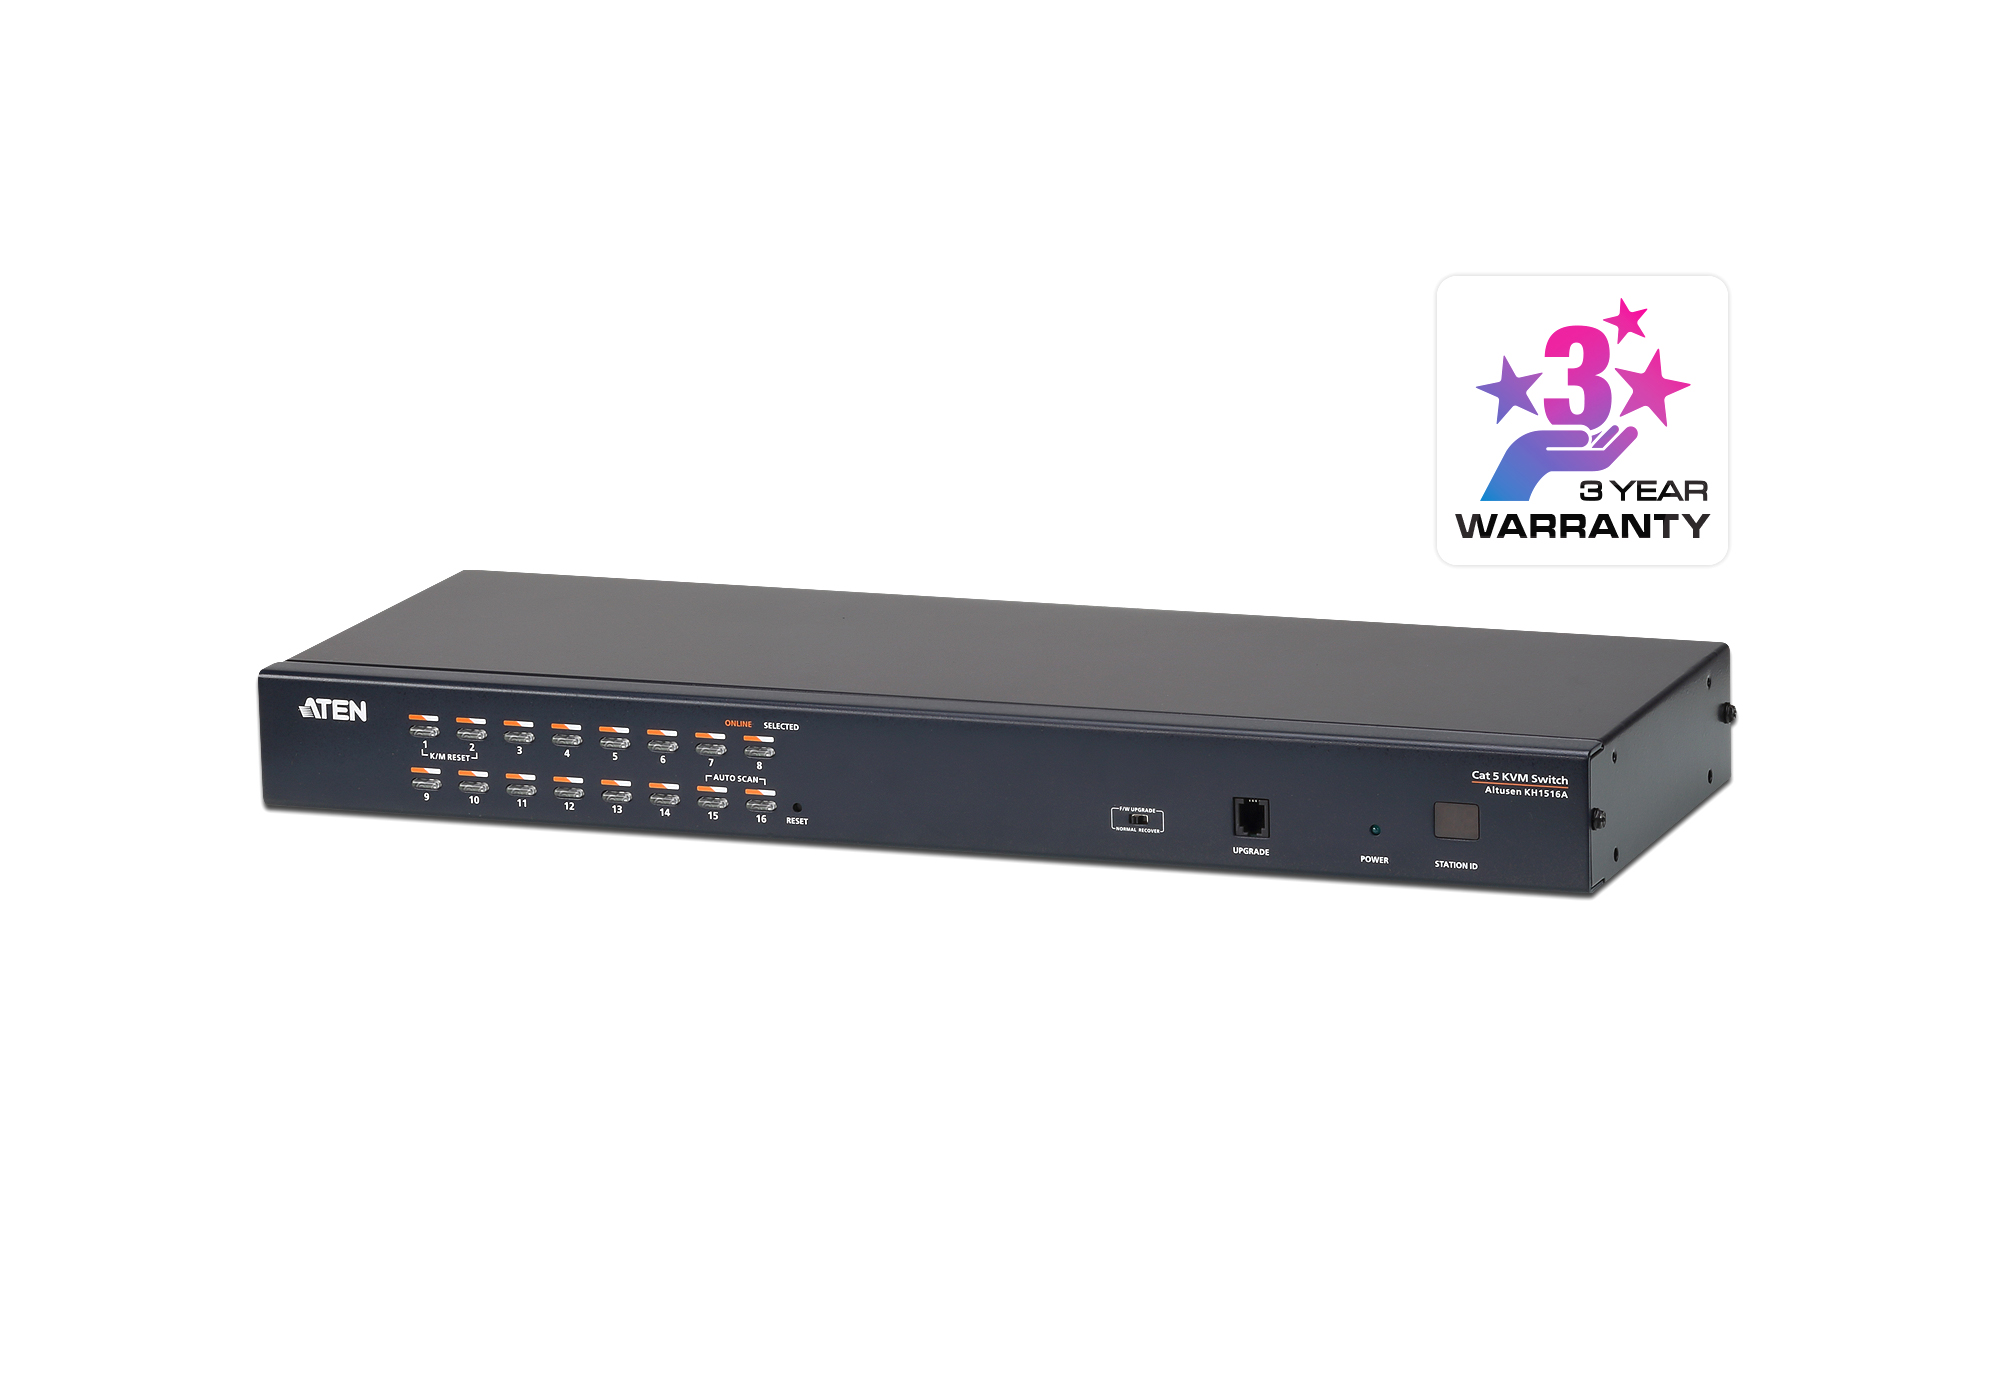 16-Port Multi-Interface (DisplayPort, HDMI, DVI, VGA) Cat 5 KVM Switch